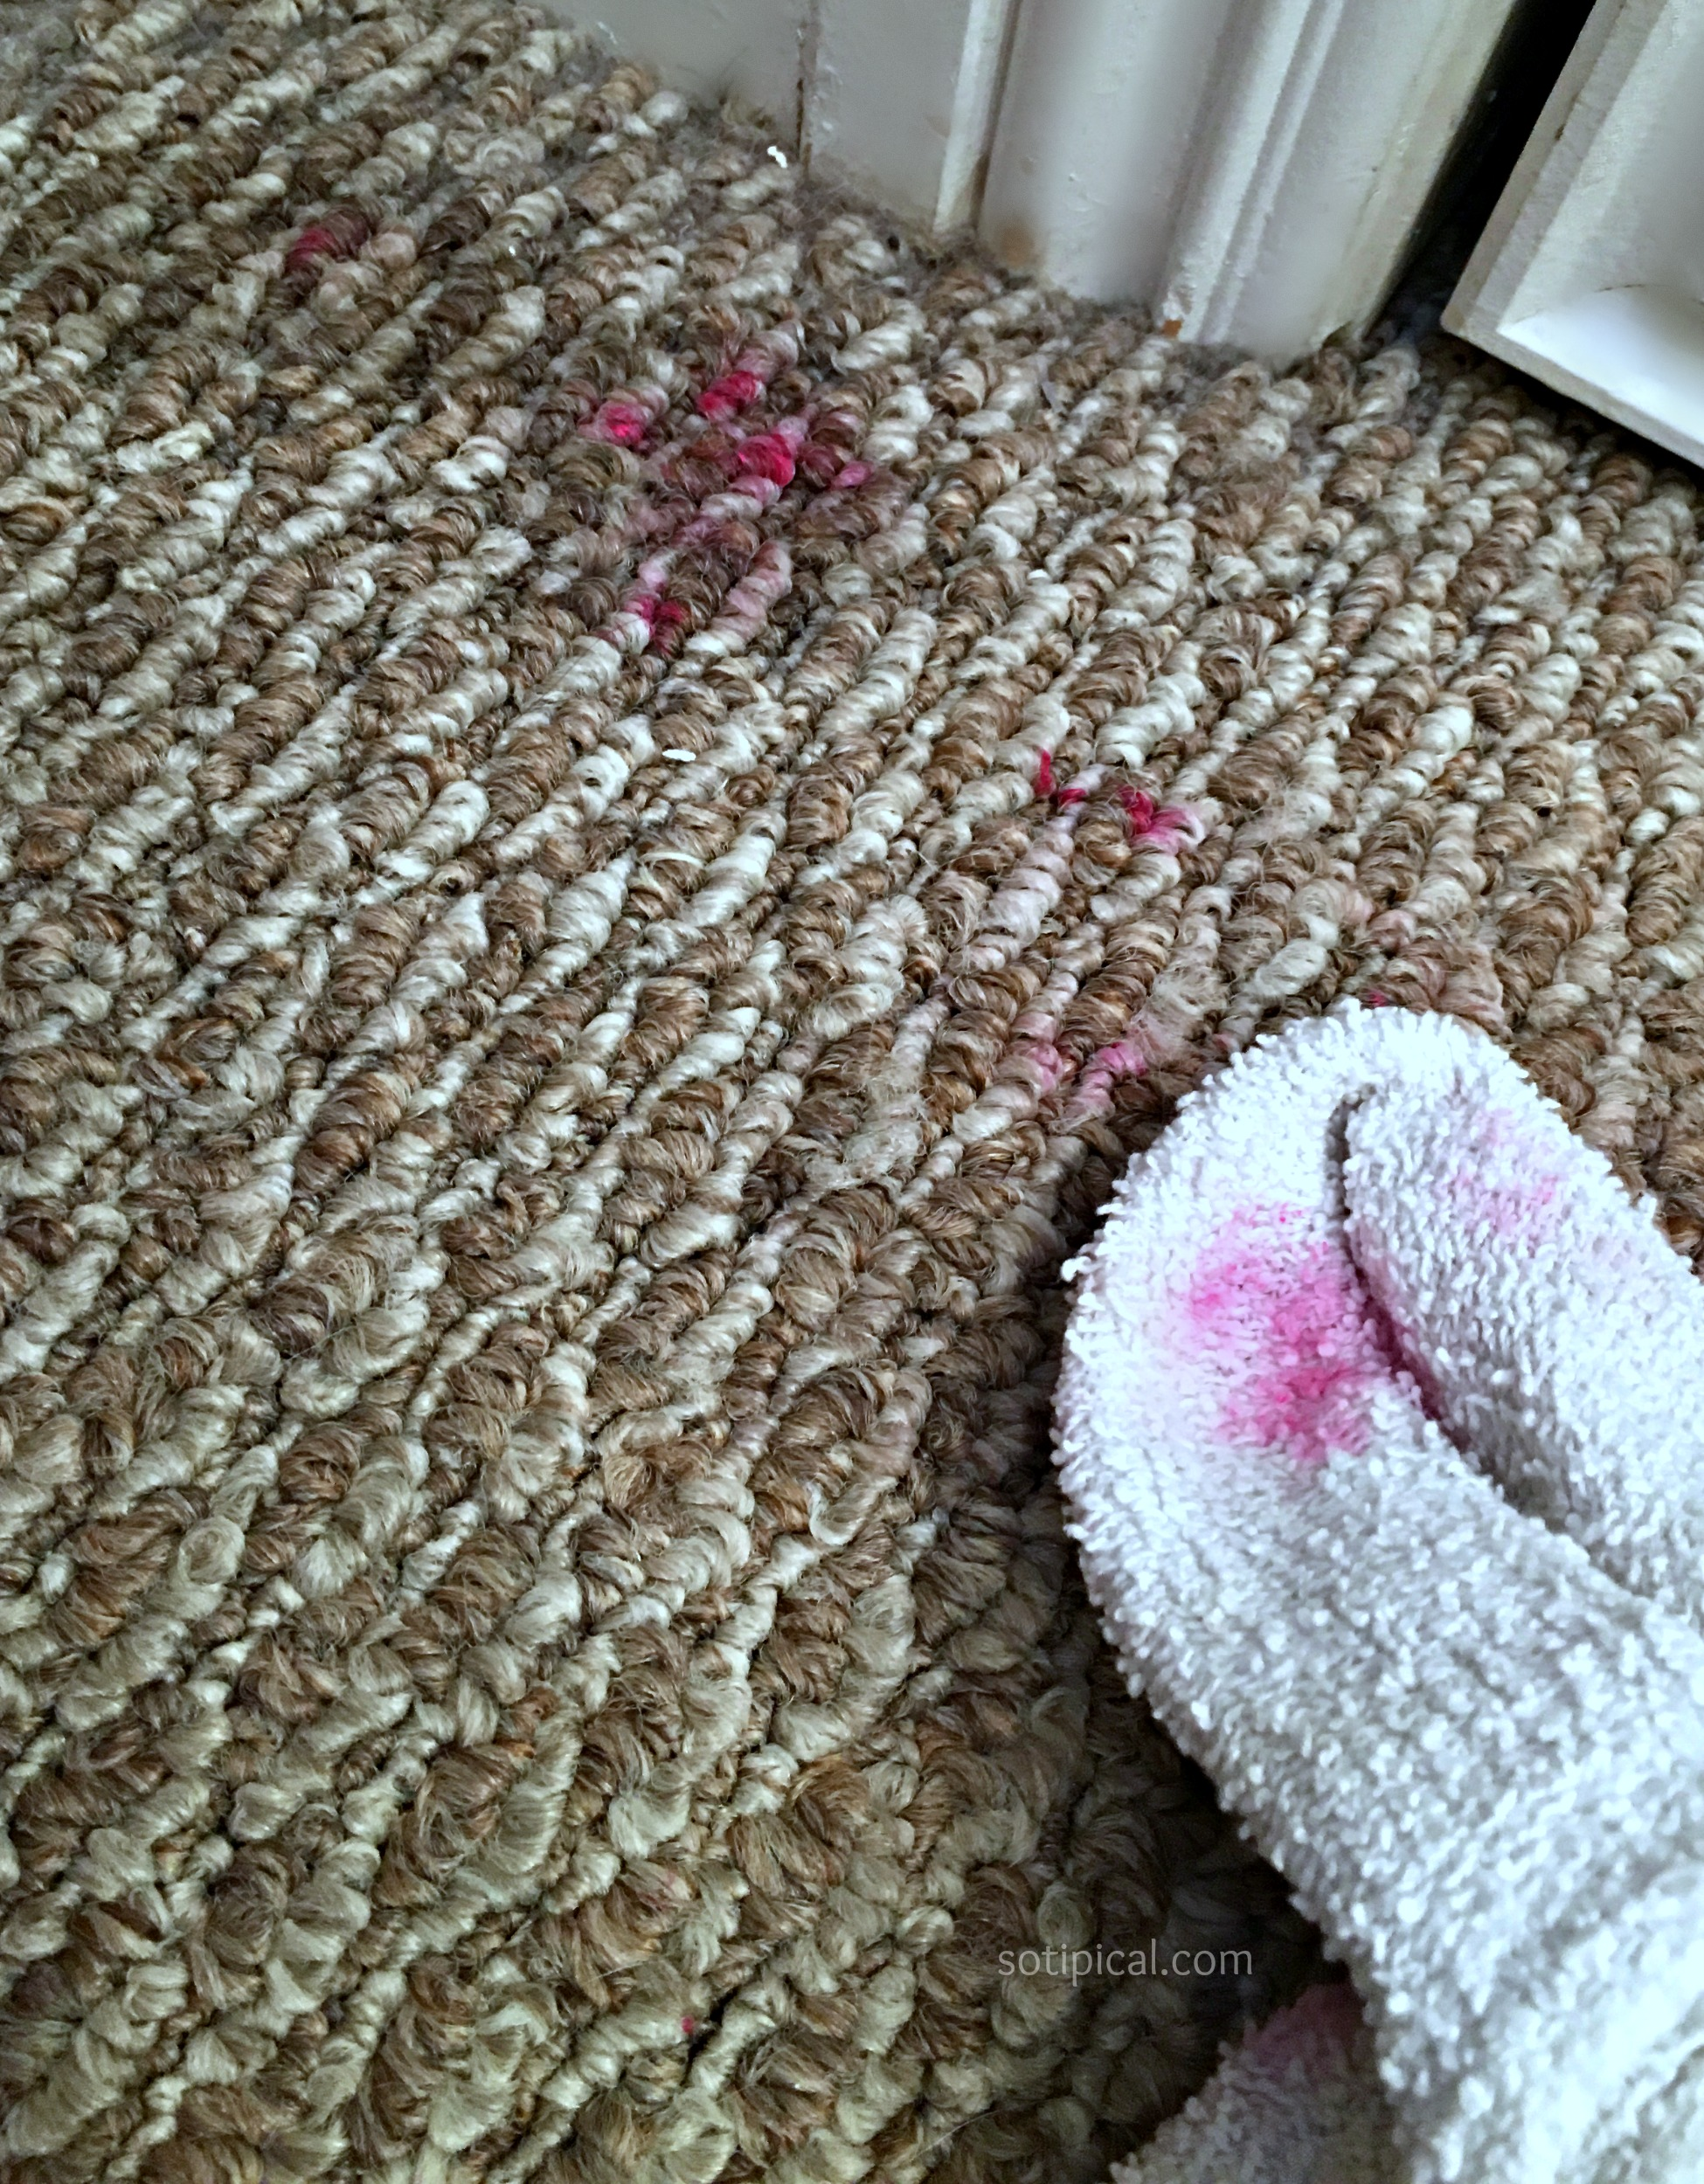 Before You Attempt To Remove The Nail Polish Stain I Highly Remend Testing This In A Small Inconuous Area Make Sure Acetone Does Not Damage